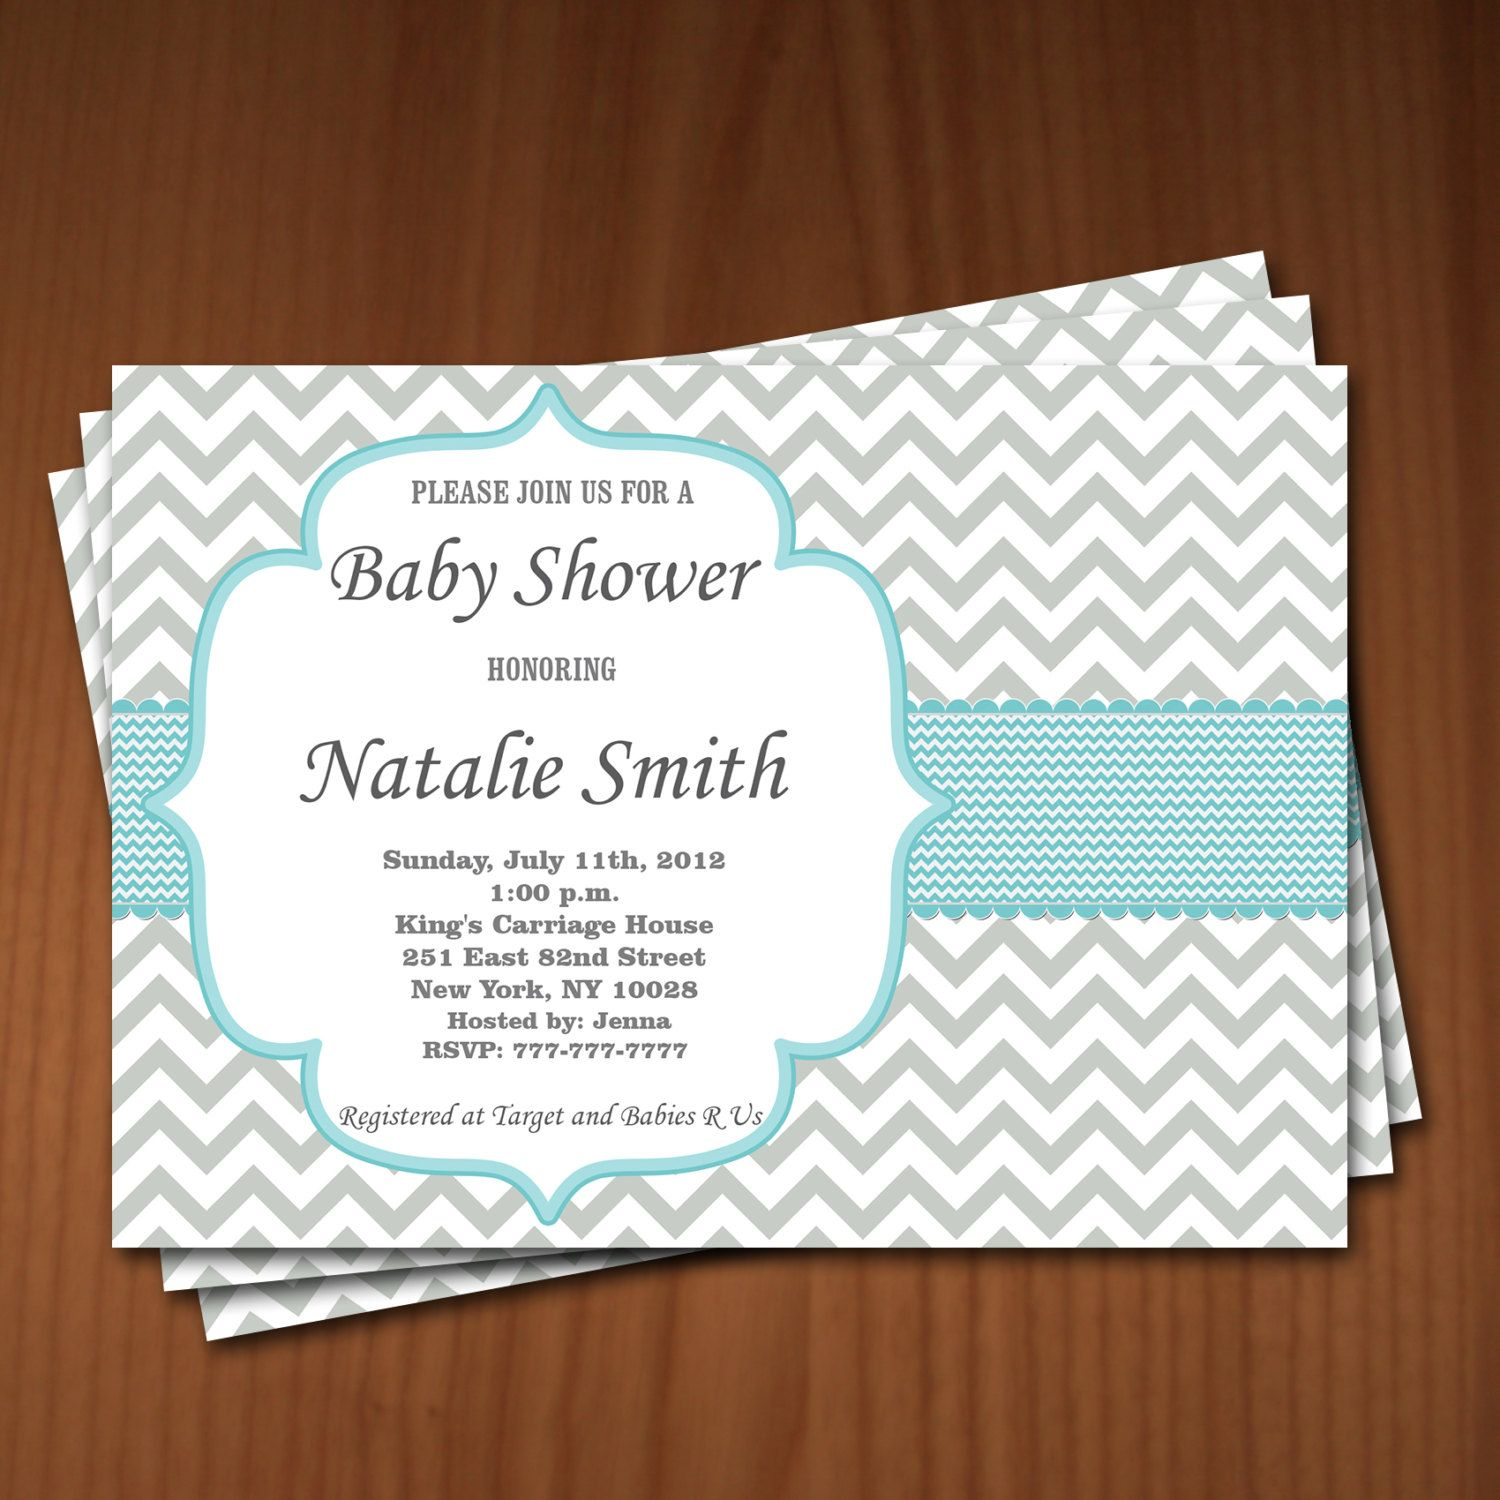 Baby shower invitation boy baby shower invitations printable baby baby shower invitation boy baby shower invitations printable baby shower invites free thank you card editable pdf download 591 blue by diymyparty on filmwisefo